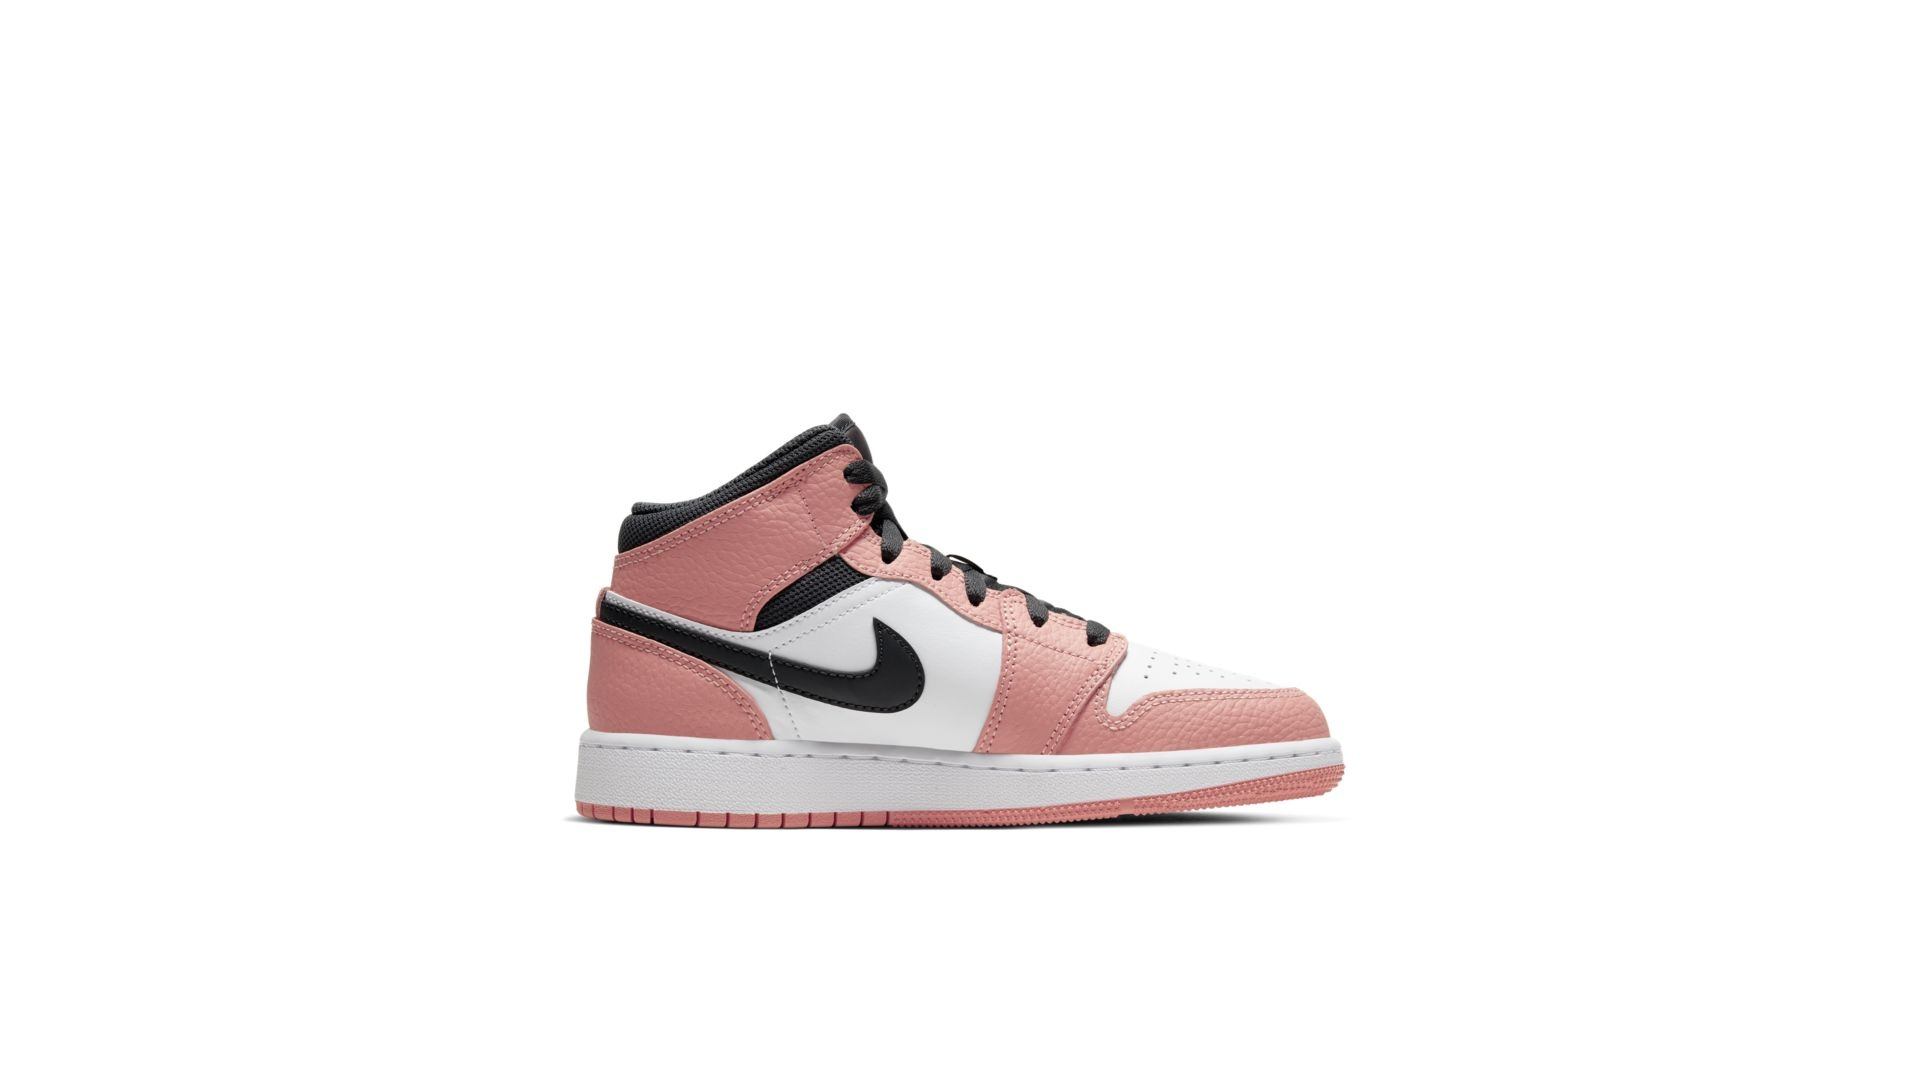 Jordan Air Jordan 1 Mid 'Pink Quartz' (GS)